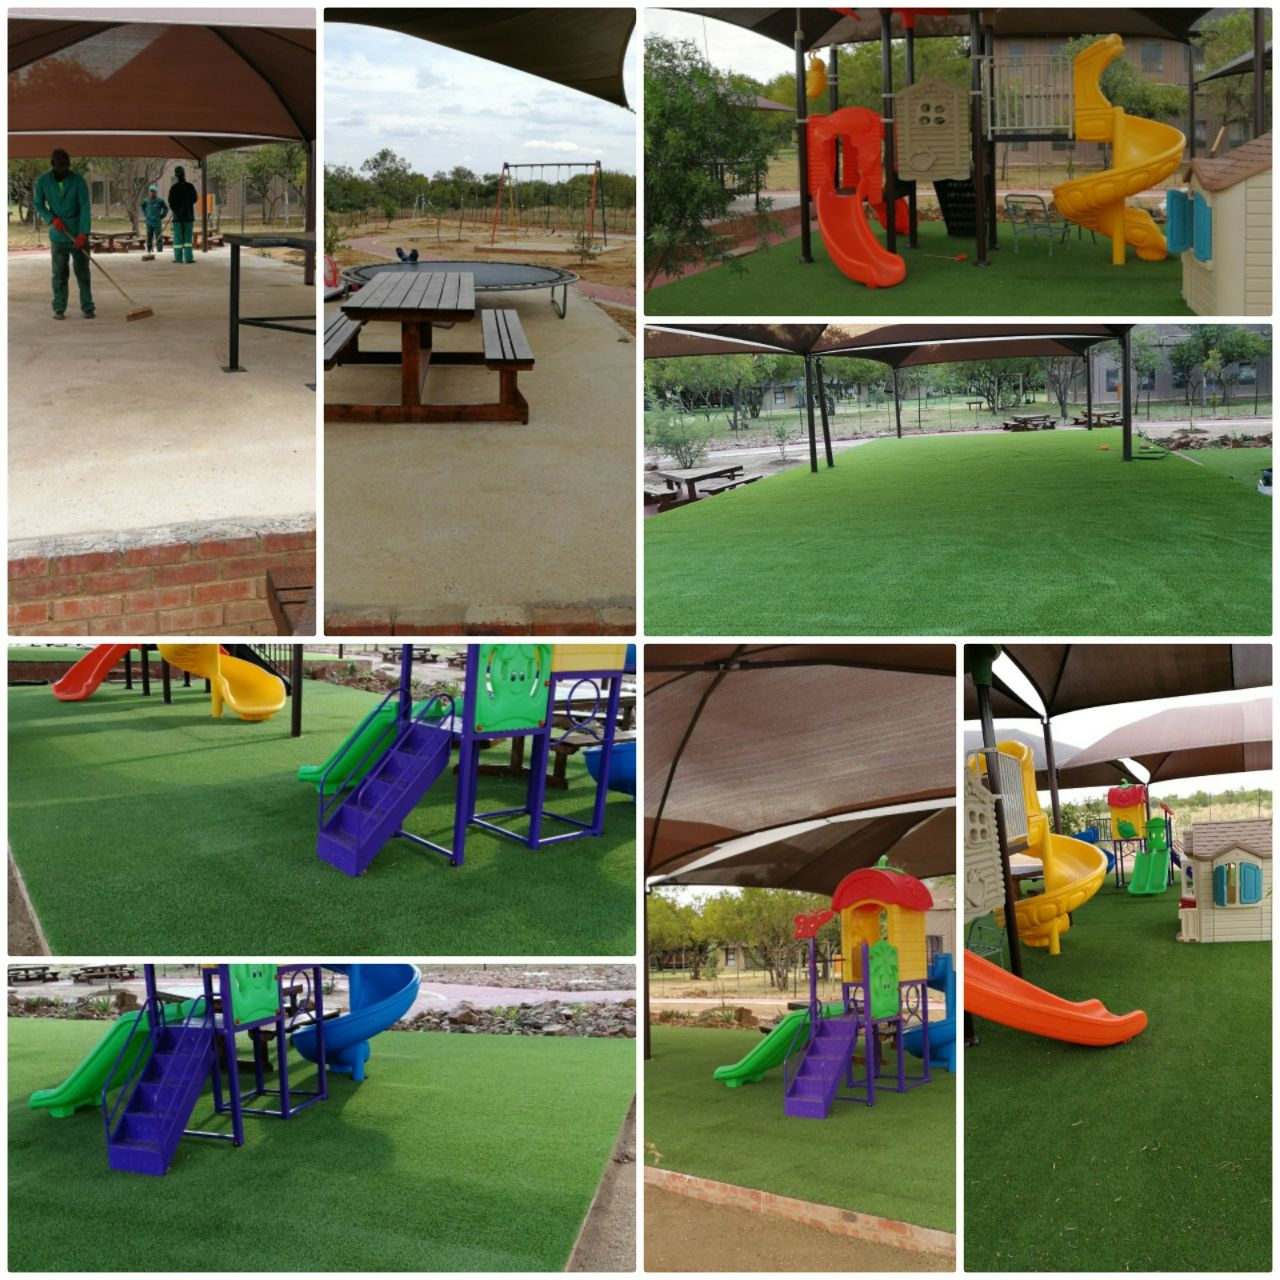 Eco Grass /Artificial Turf, Modular Play Equipment, Outdoor Gym Equipment, Safety Rubber Surfacing